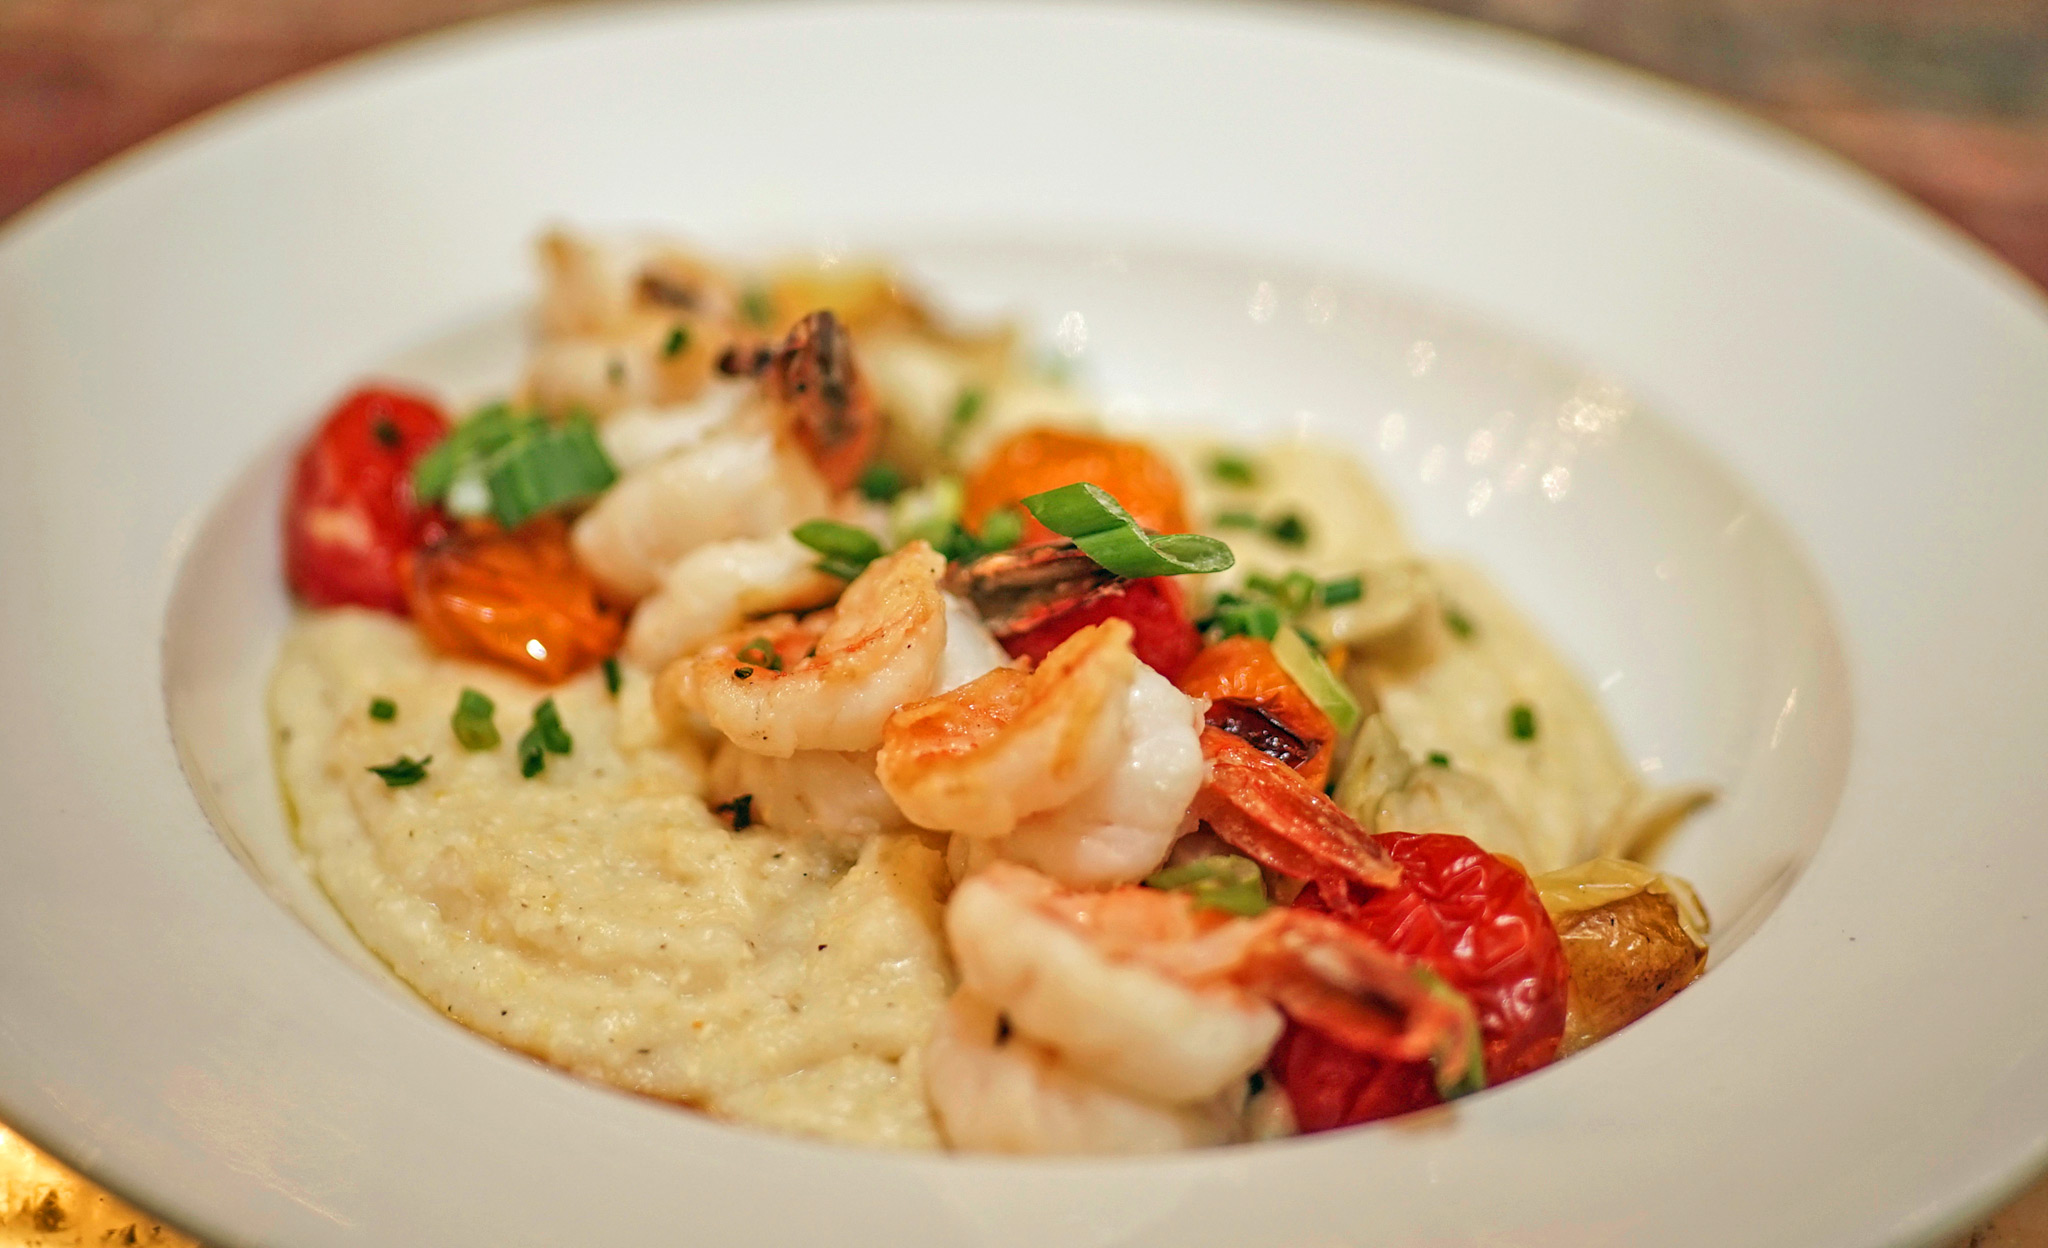 Grilled Shrimp and Grits - aged cheddar and Parmesan grits, roasted tomatoes and fennel